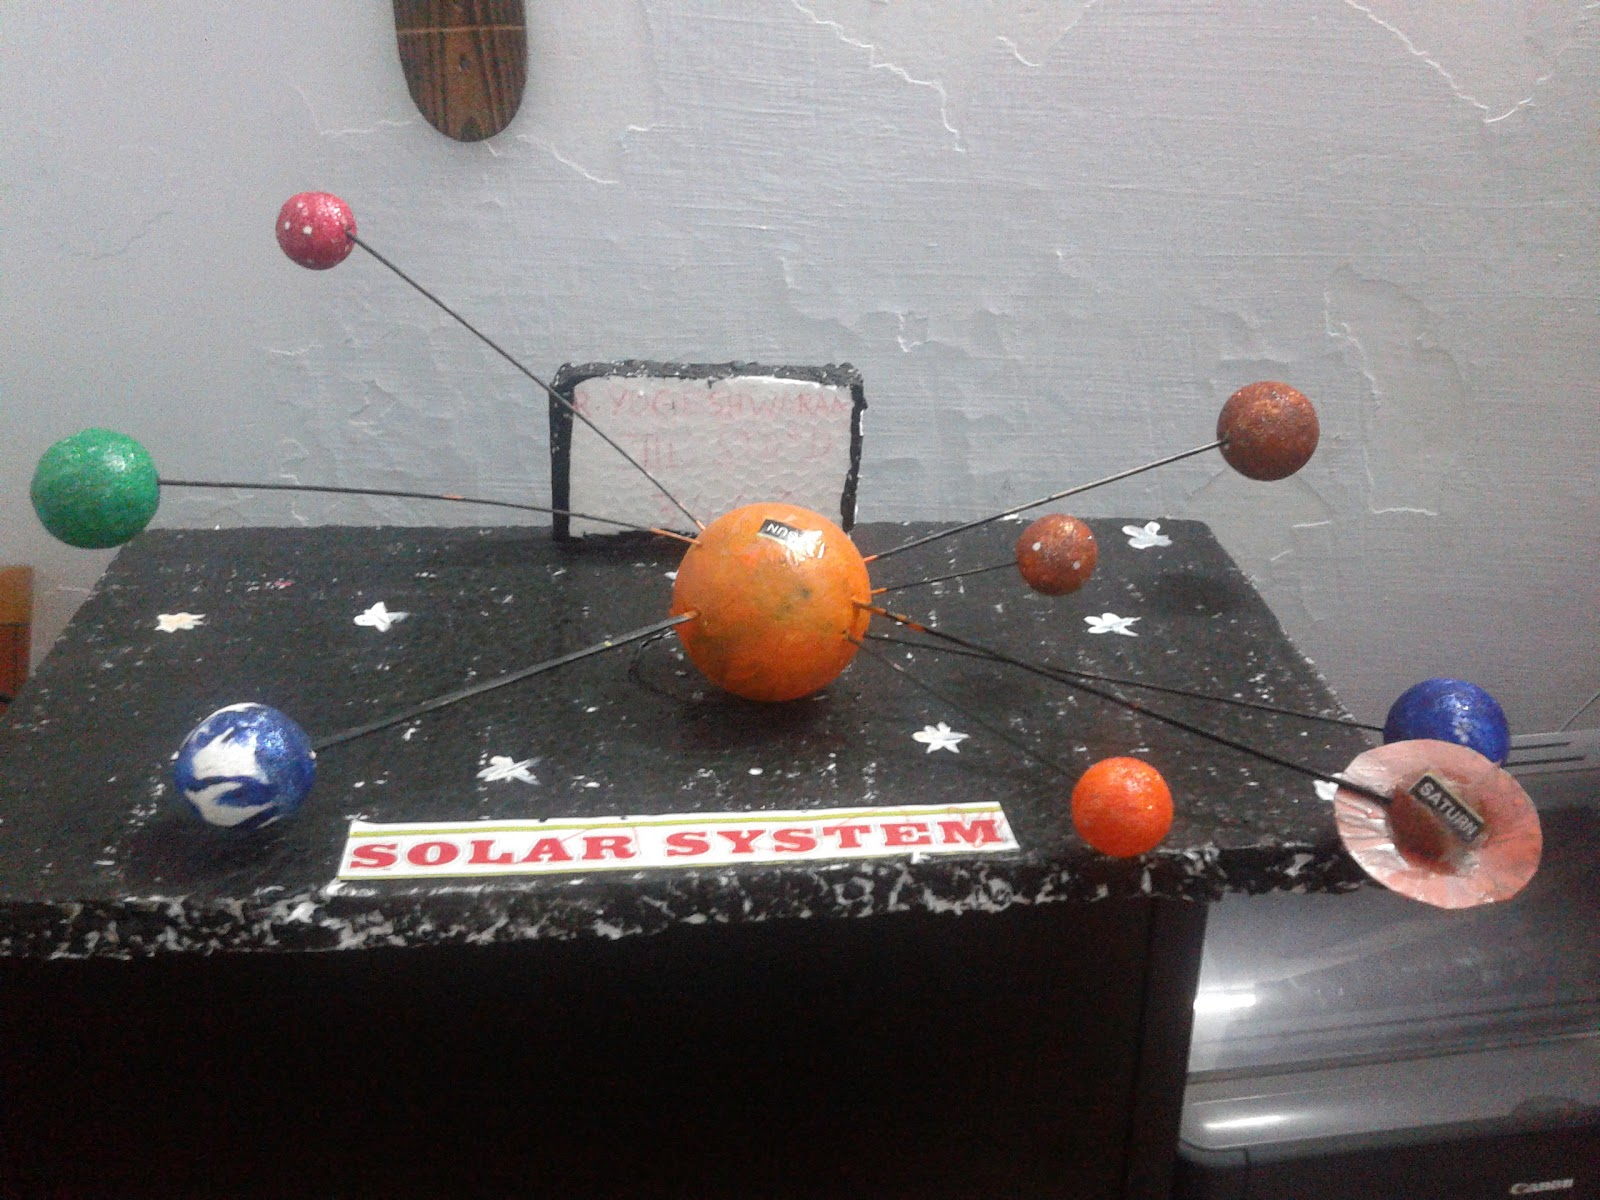 3d solar system model ideas - photo #25